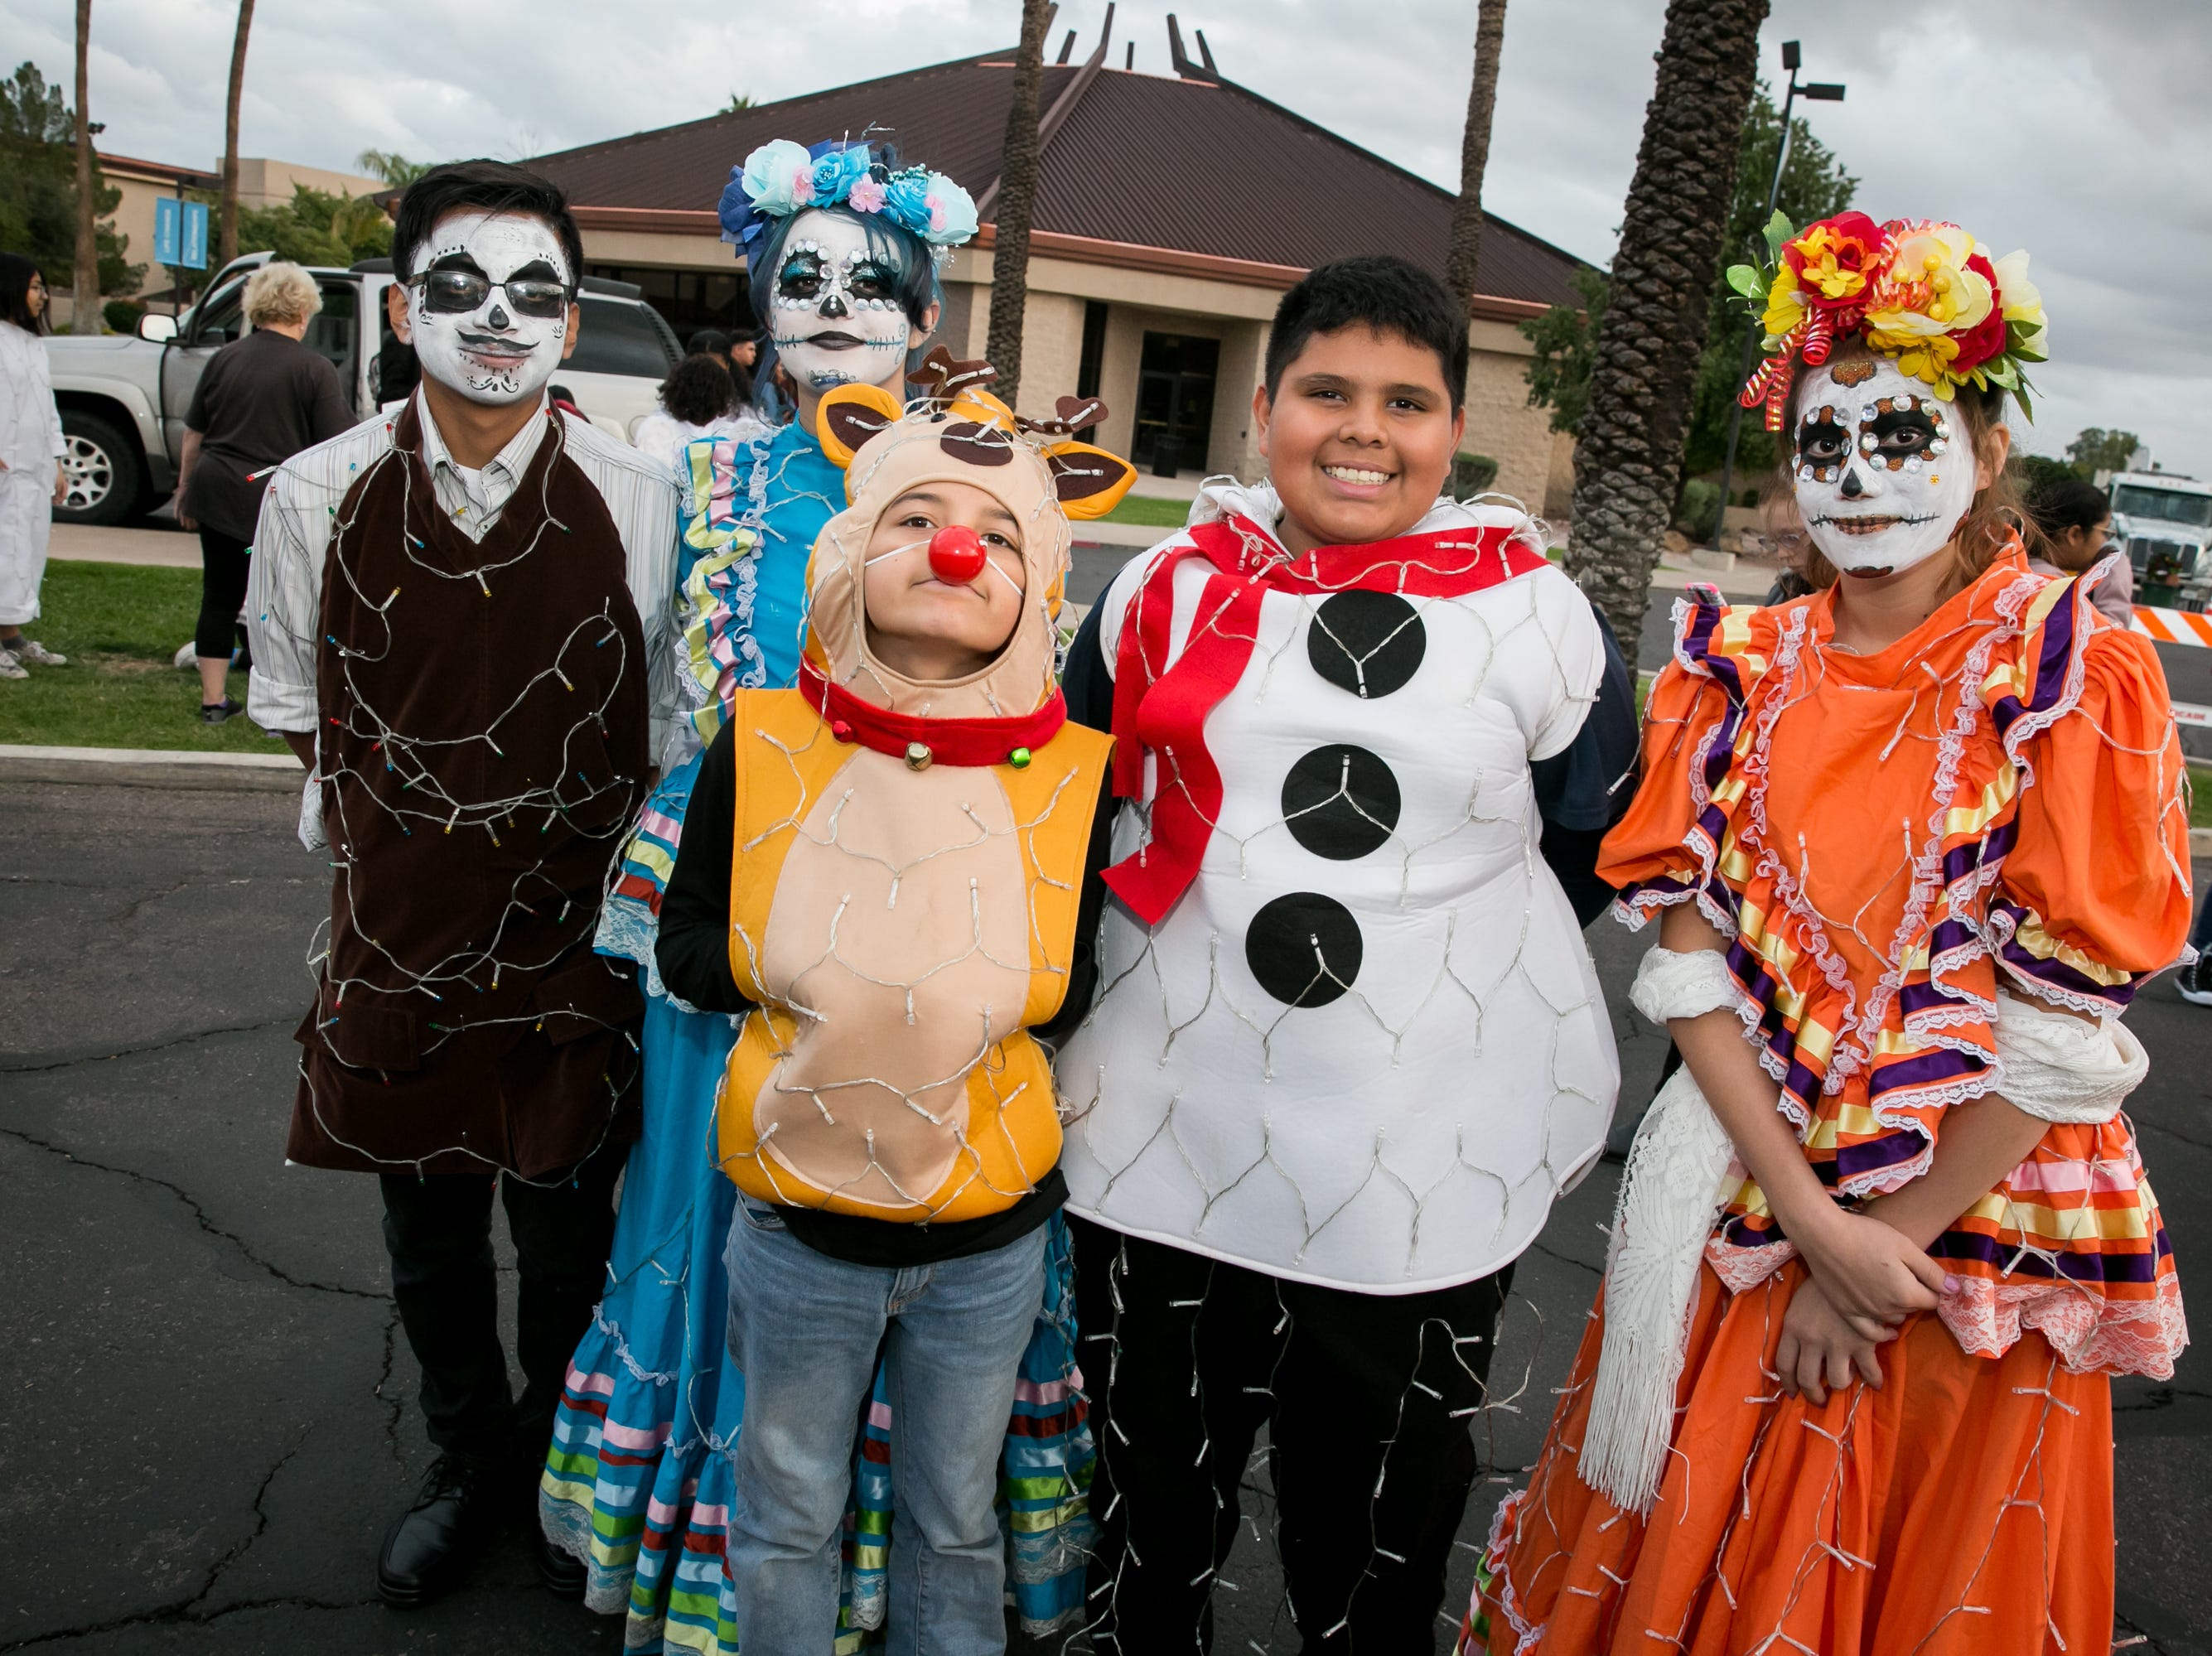 This group looked festive during the APS Electric Light Parade in Central Phoenix on Saturday, December 1, 2018.